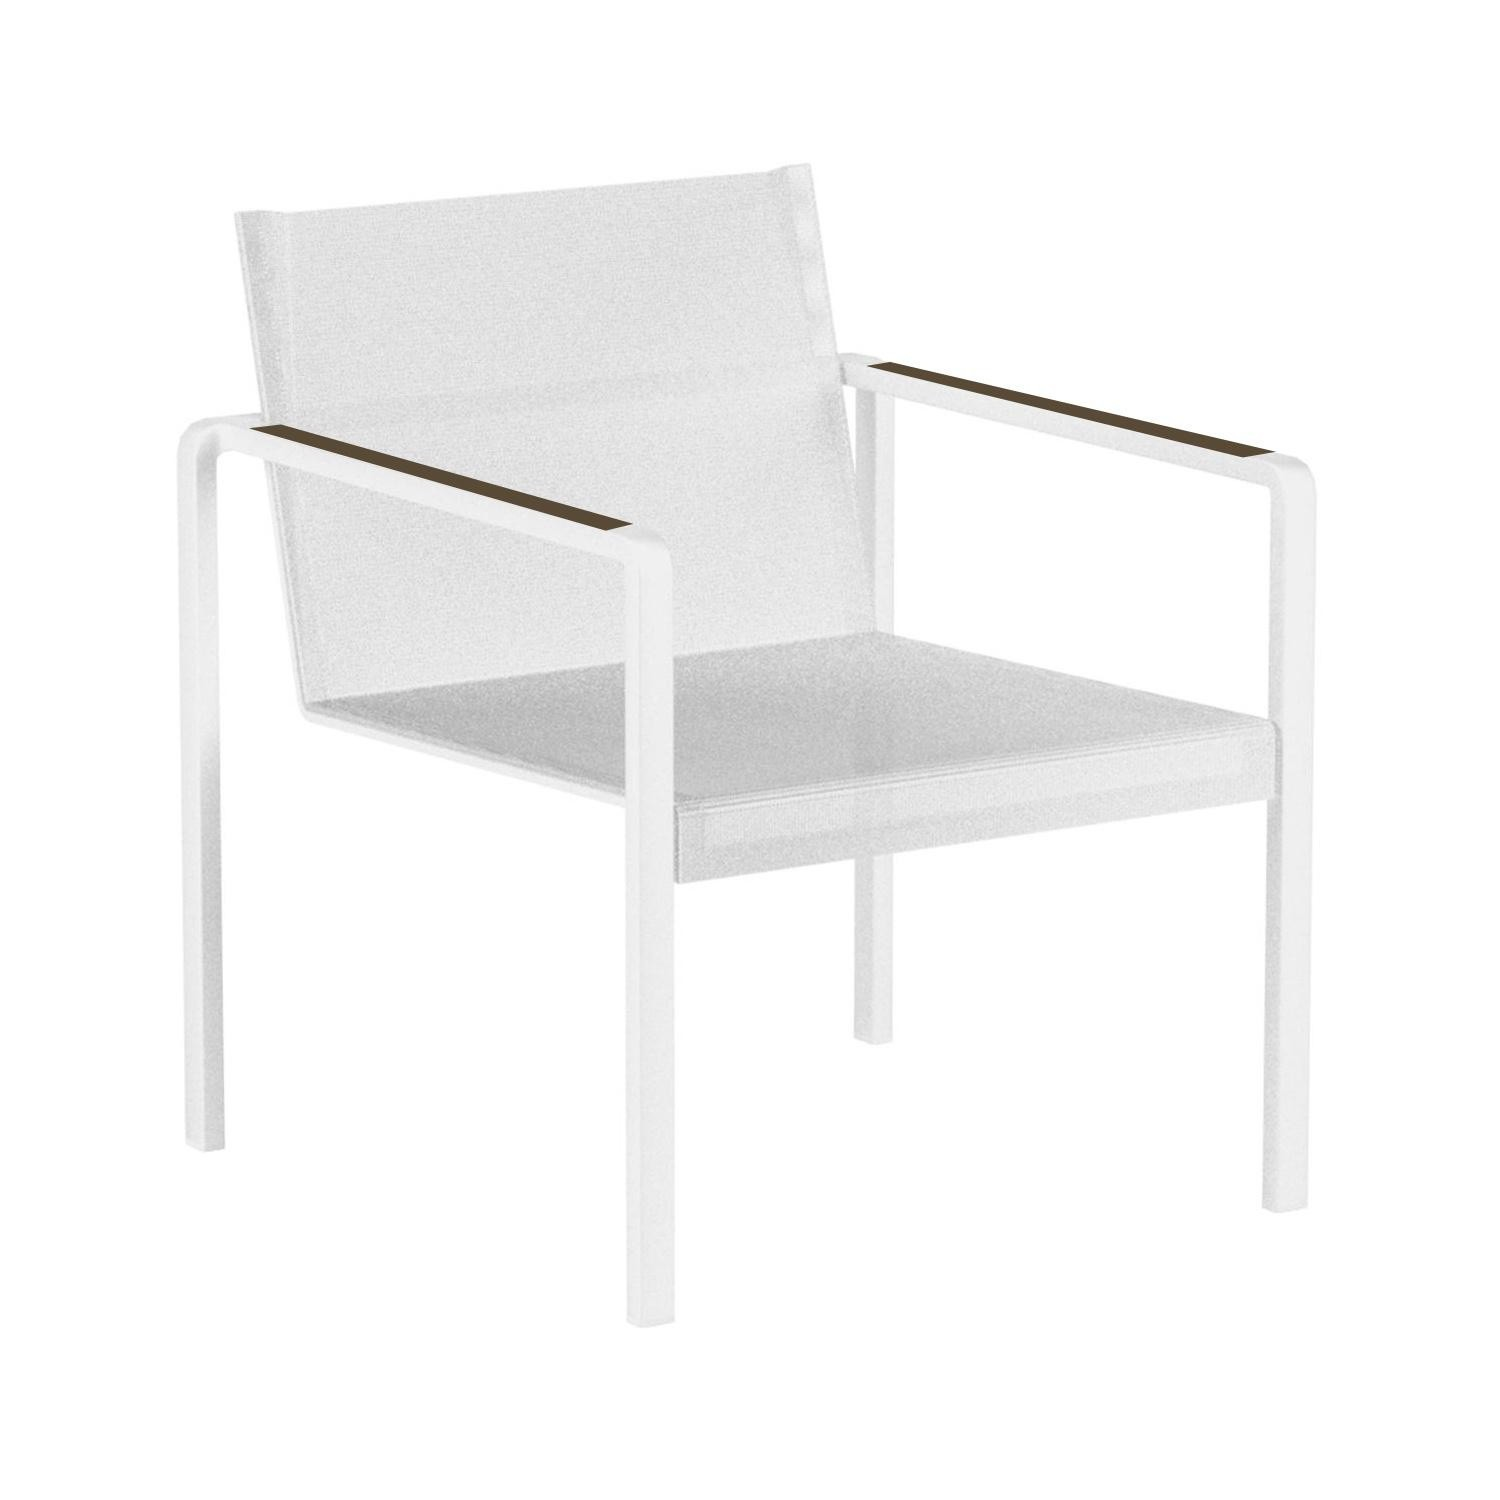 White Outdoor Lounge Chair Alura Outdoor Lounge Chair